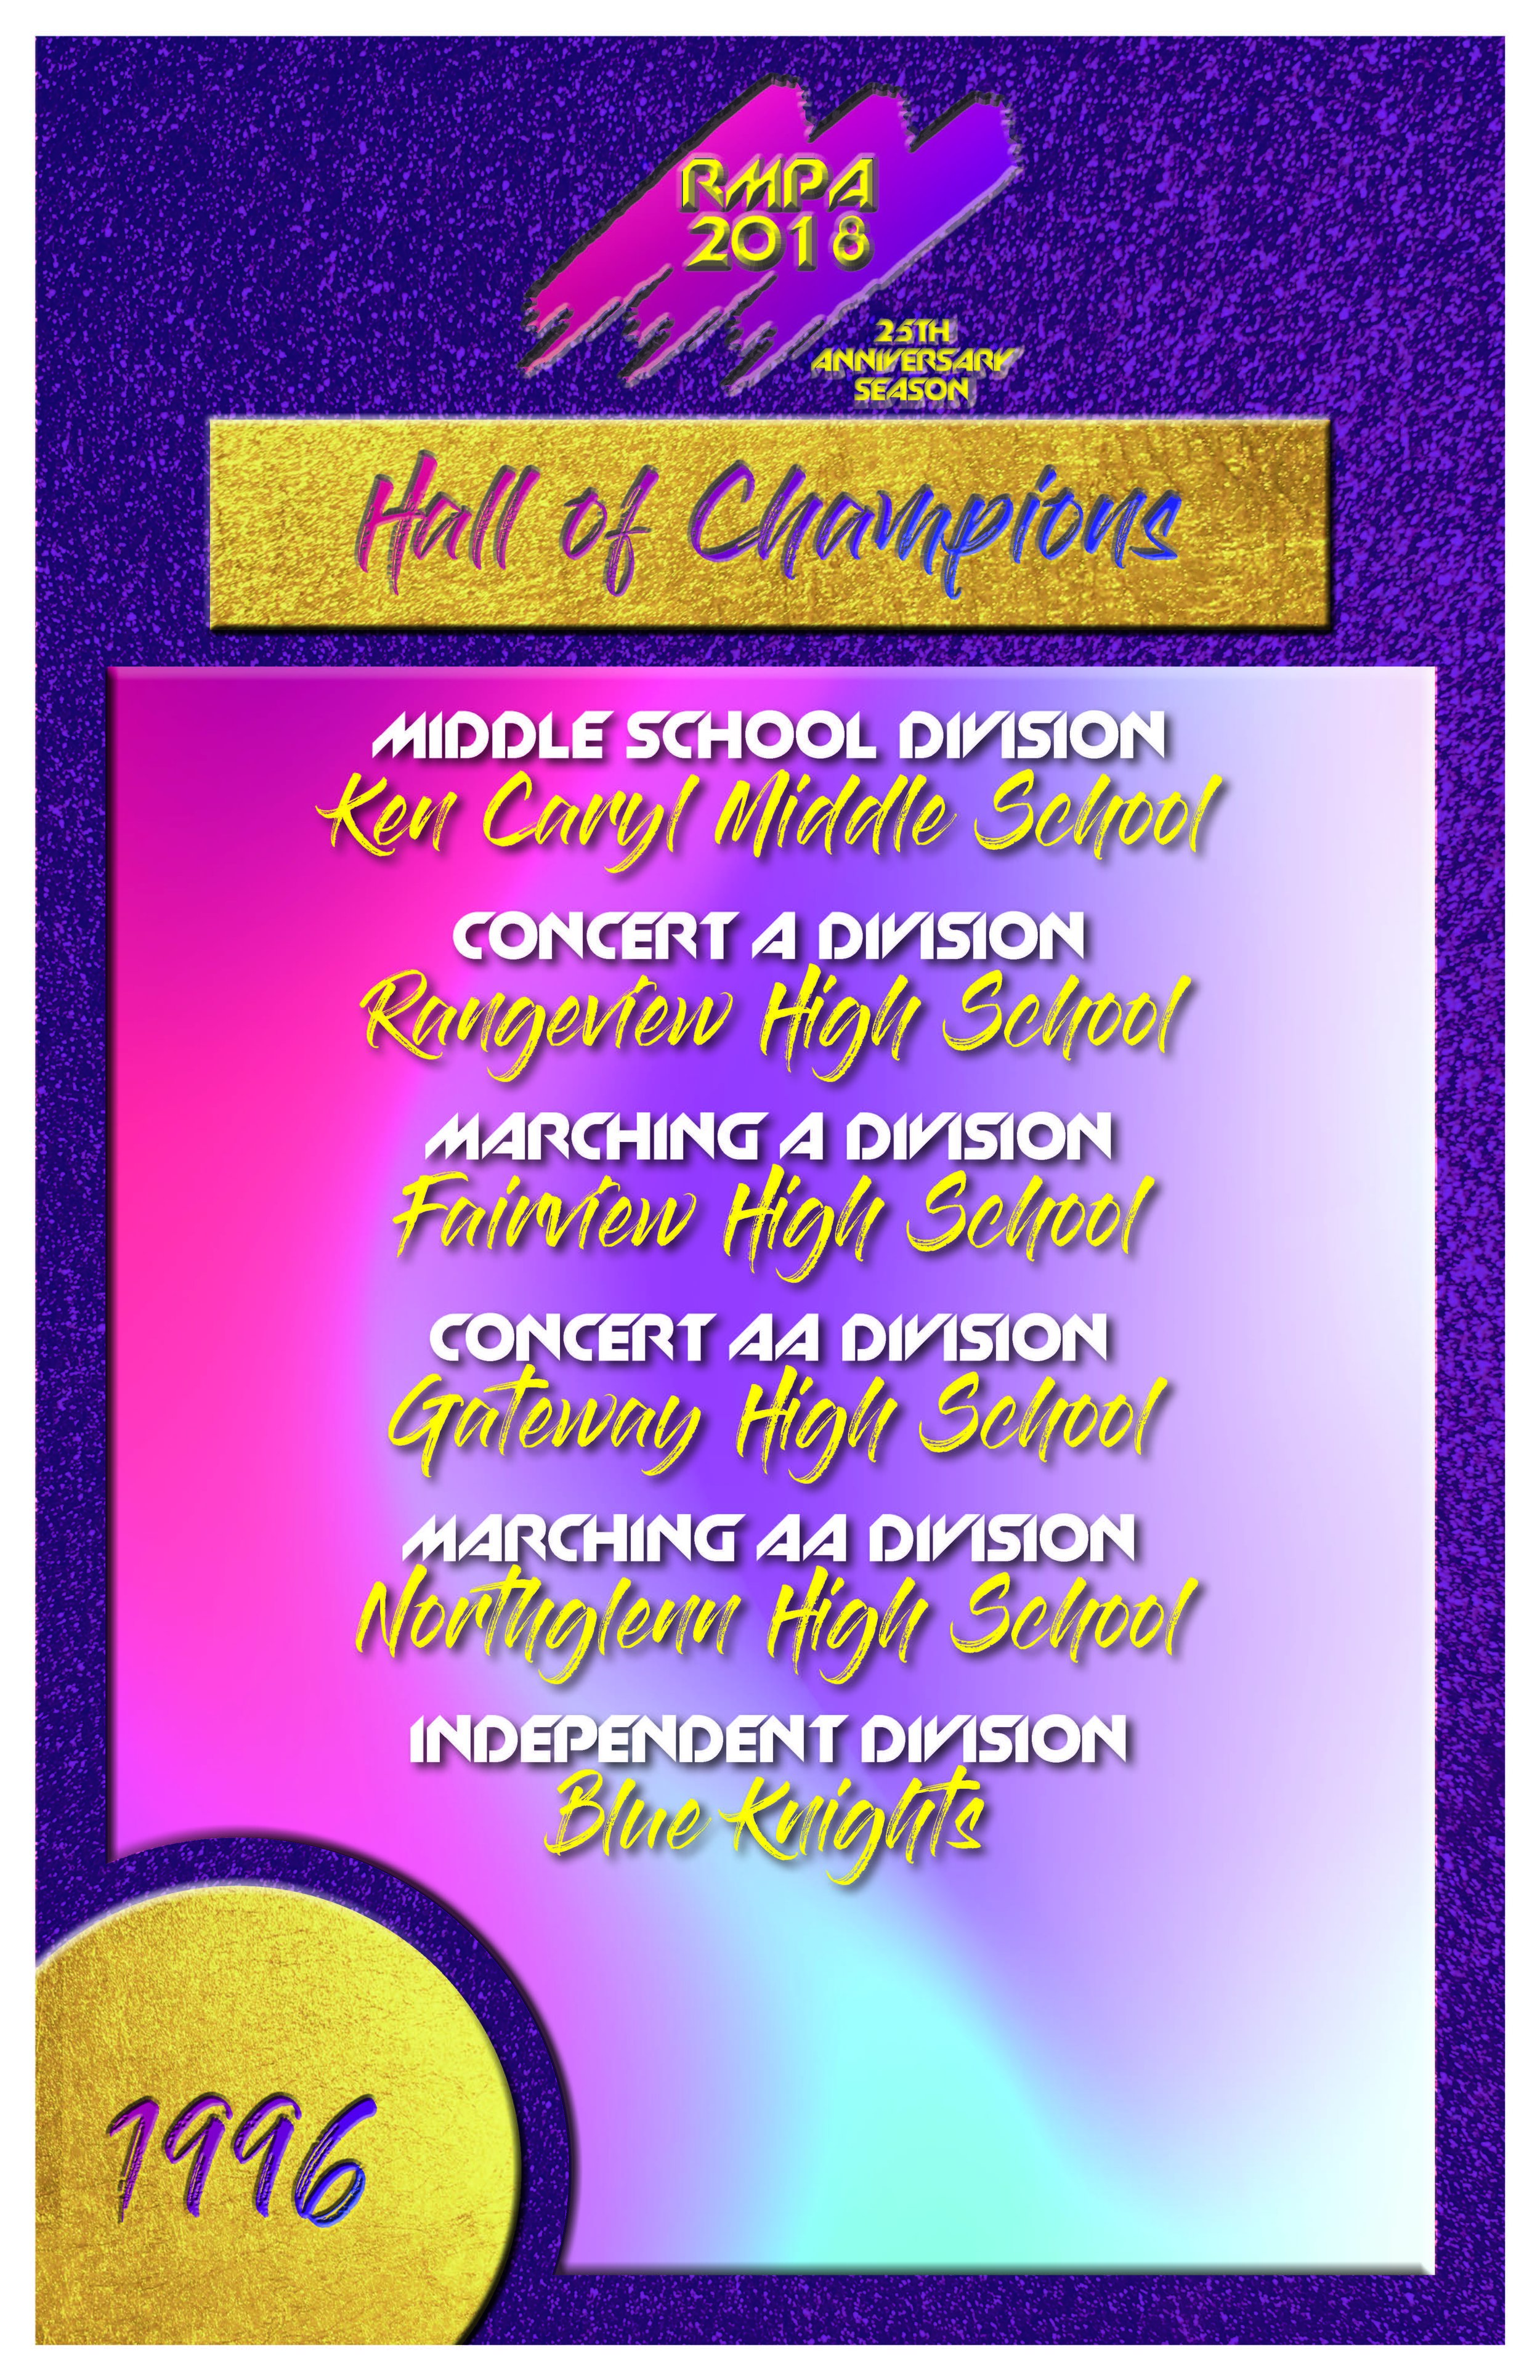 Hall of Champions Posters_Page_04.jpg